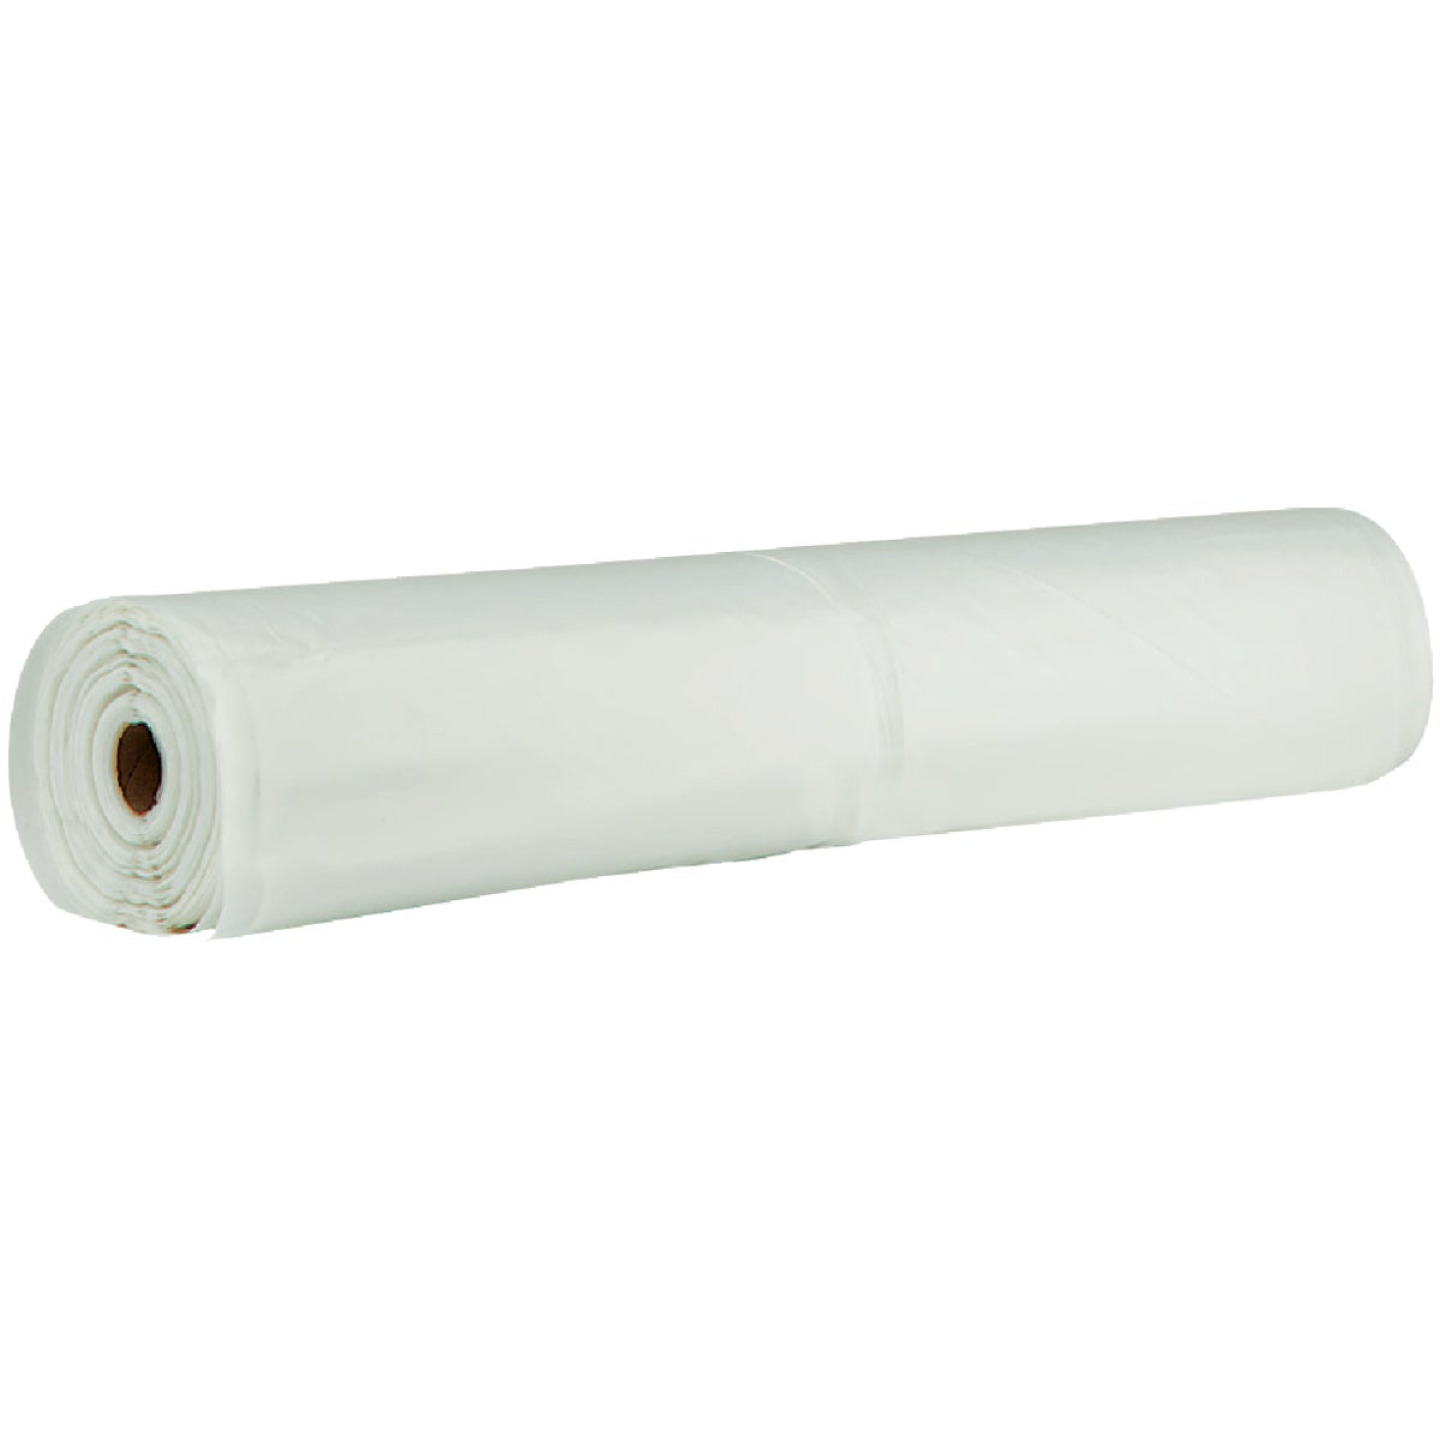 Film-Gard 6 Ft. x 100 Ft. Clear 4 Mil. Polyethylene Sheeting Image 1